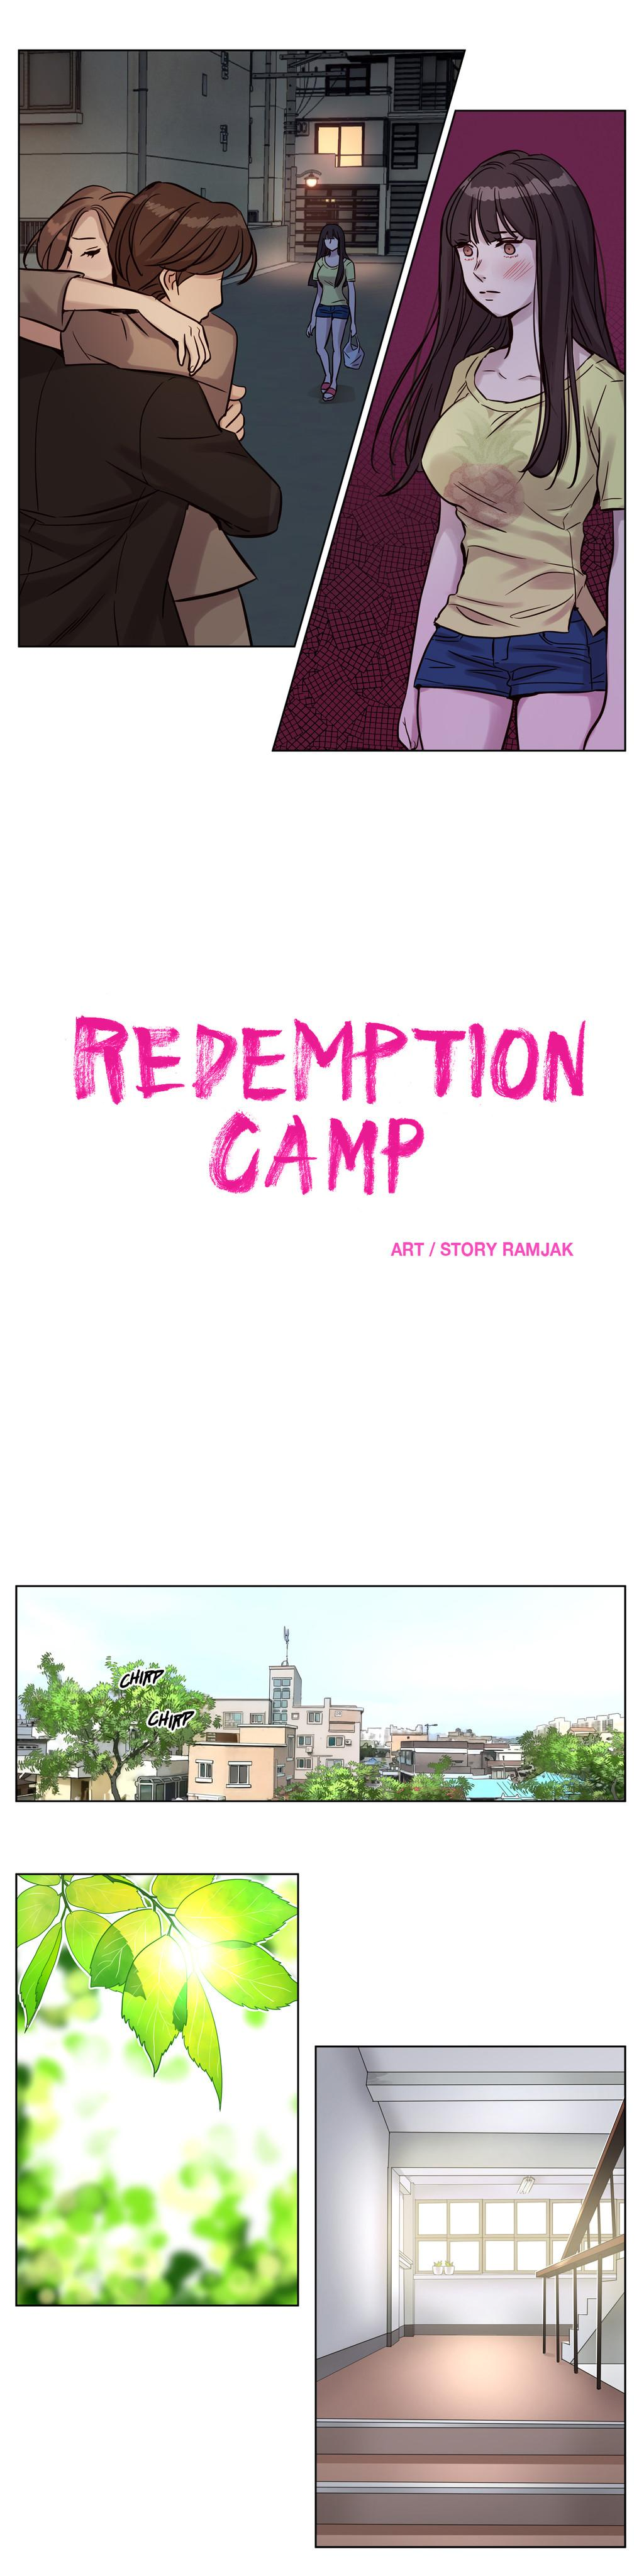 Atonement Camp Ch.0-34 181